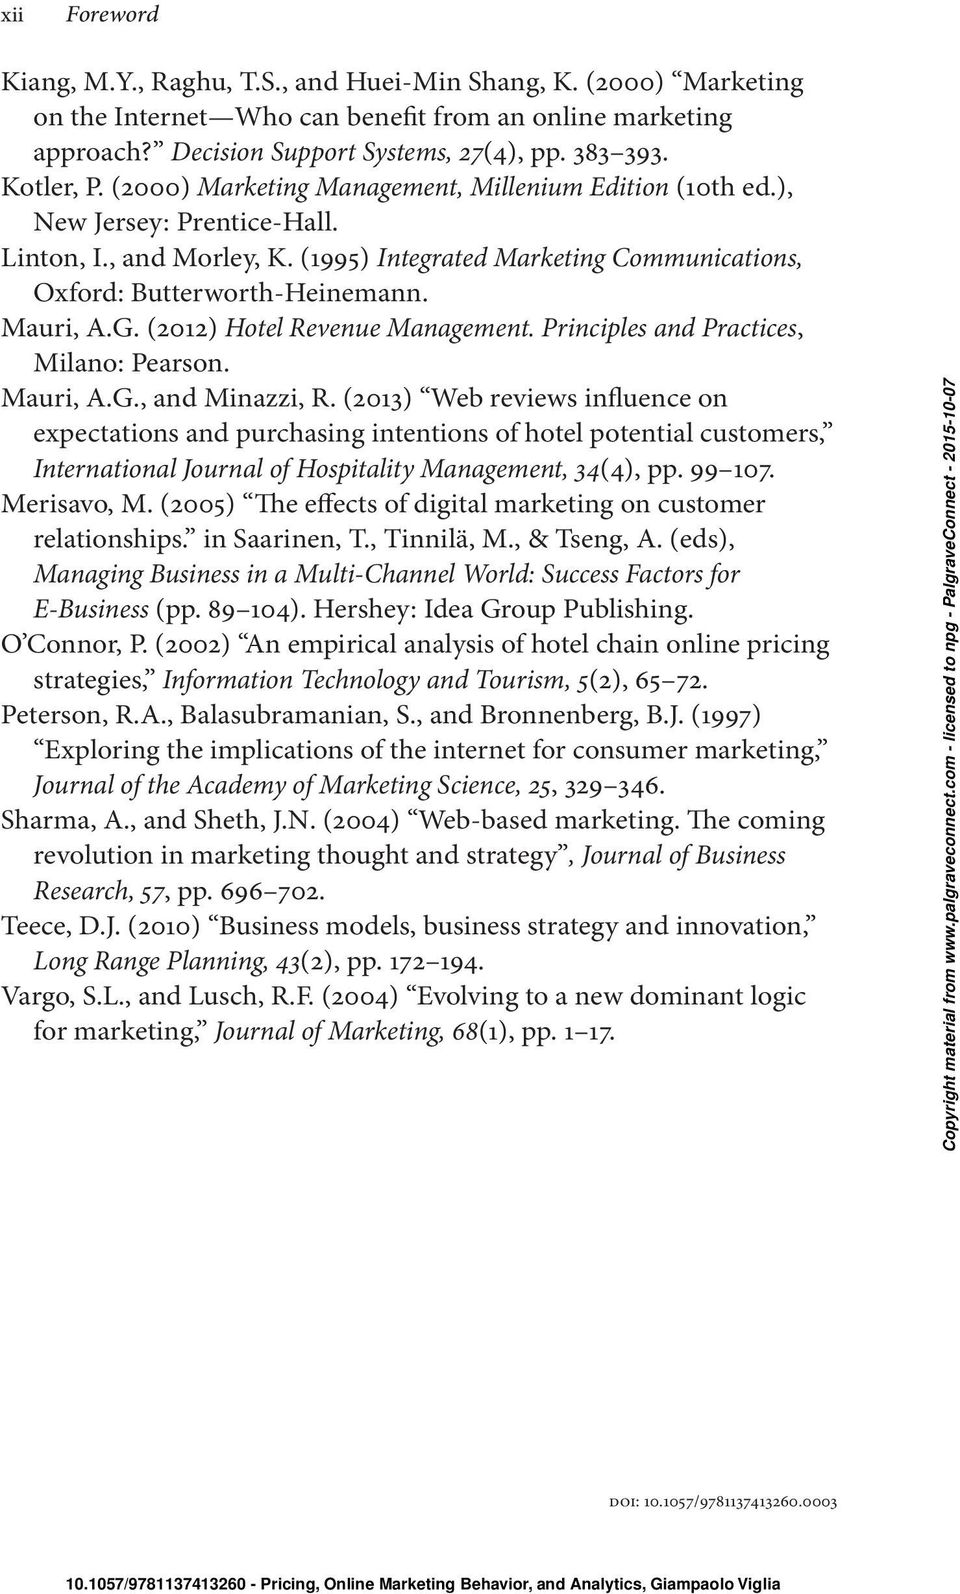 (2012) Hotel Revenue Management. Principles and Practices, Milano: Pearson. Mauri, A.G., and Minazzi, R.